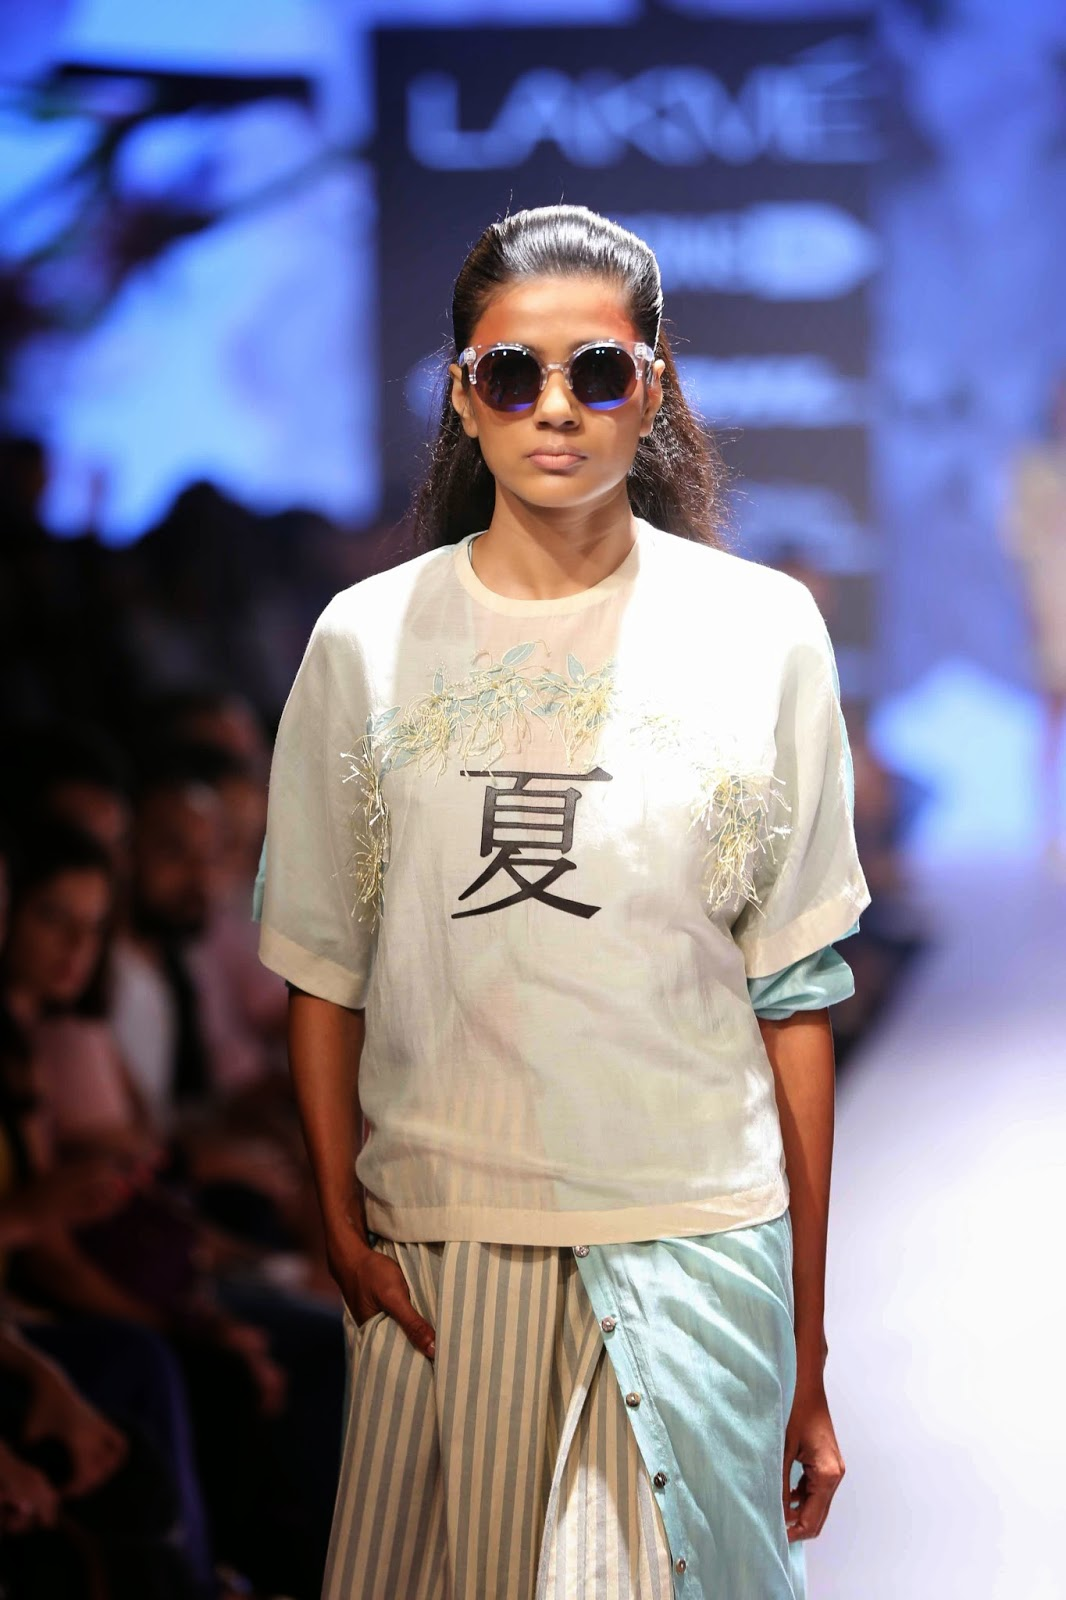 http://aquaintperspective.blogspot.in/,RAGINI AHUJA for IKAI